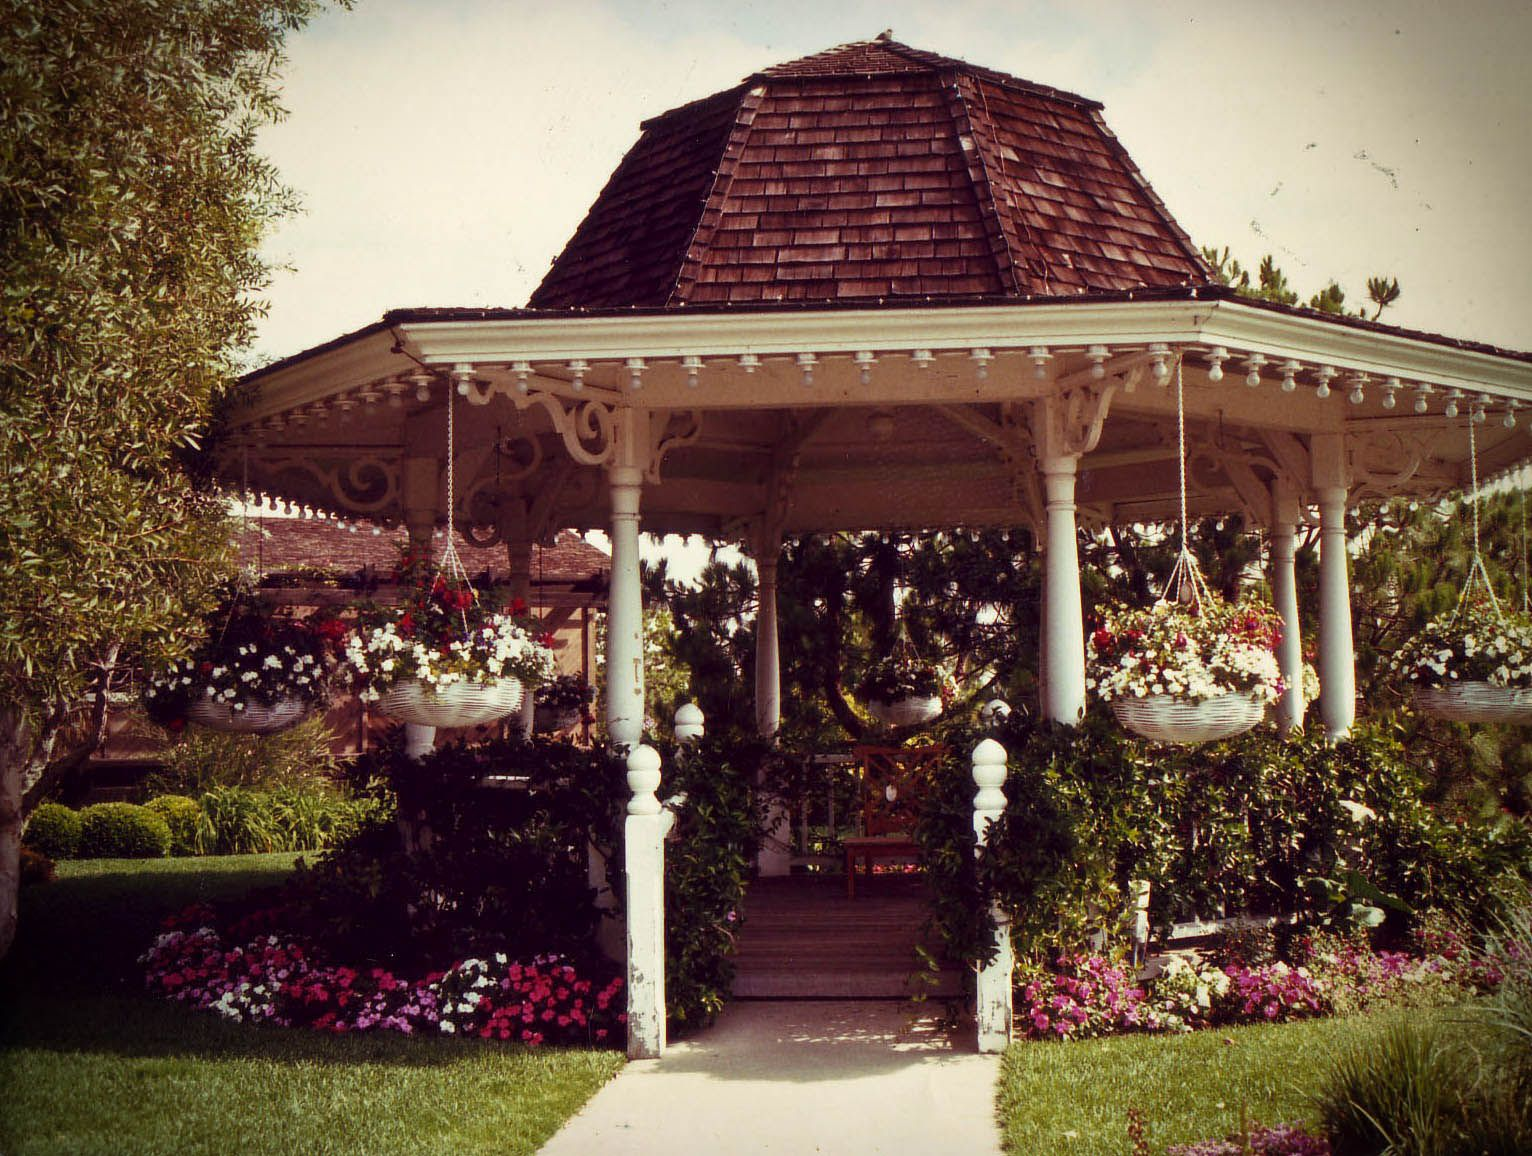 About RG (With images) Rogers gardens, Garden gazebo